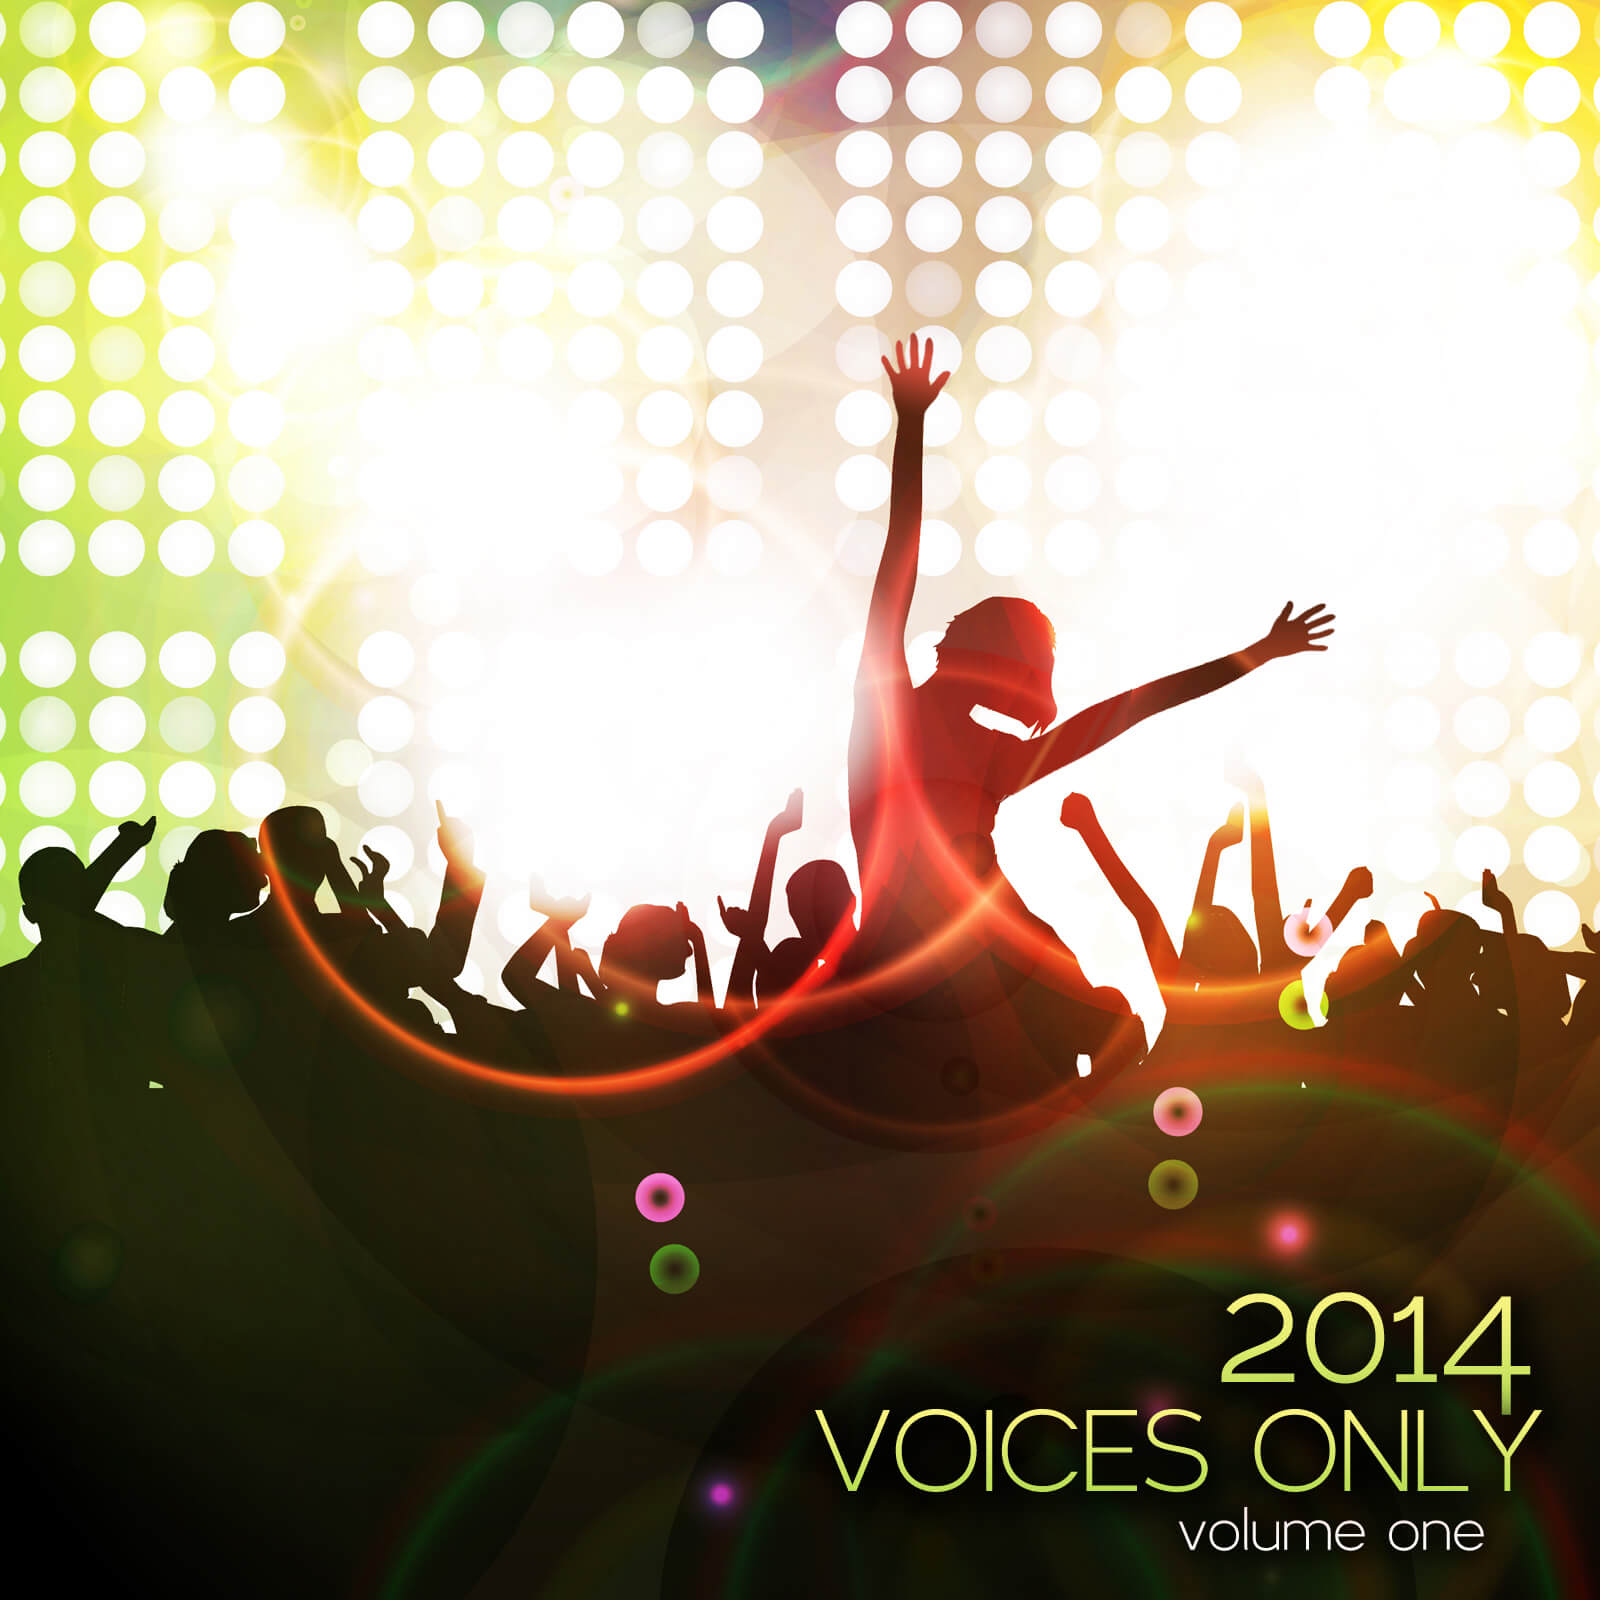 Voices Only 2014